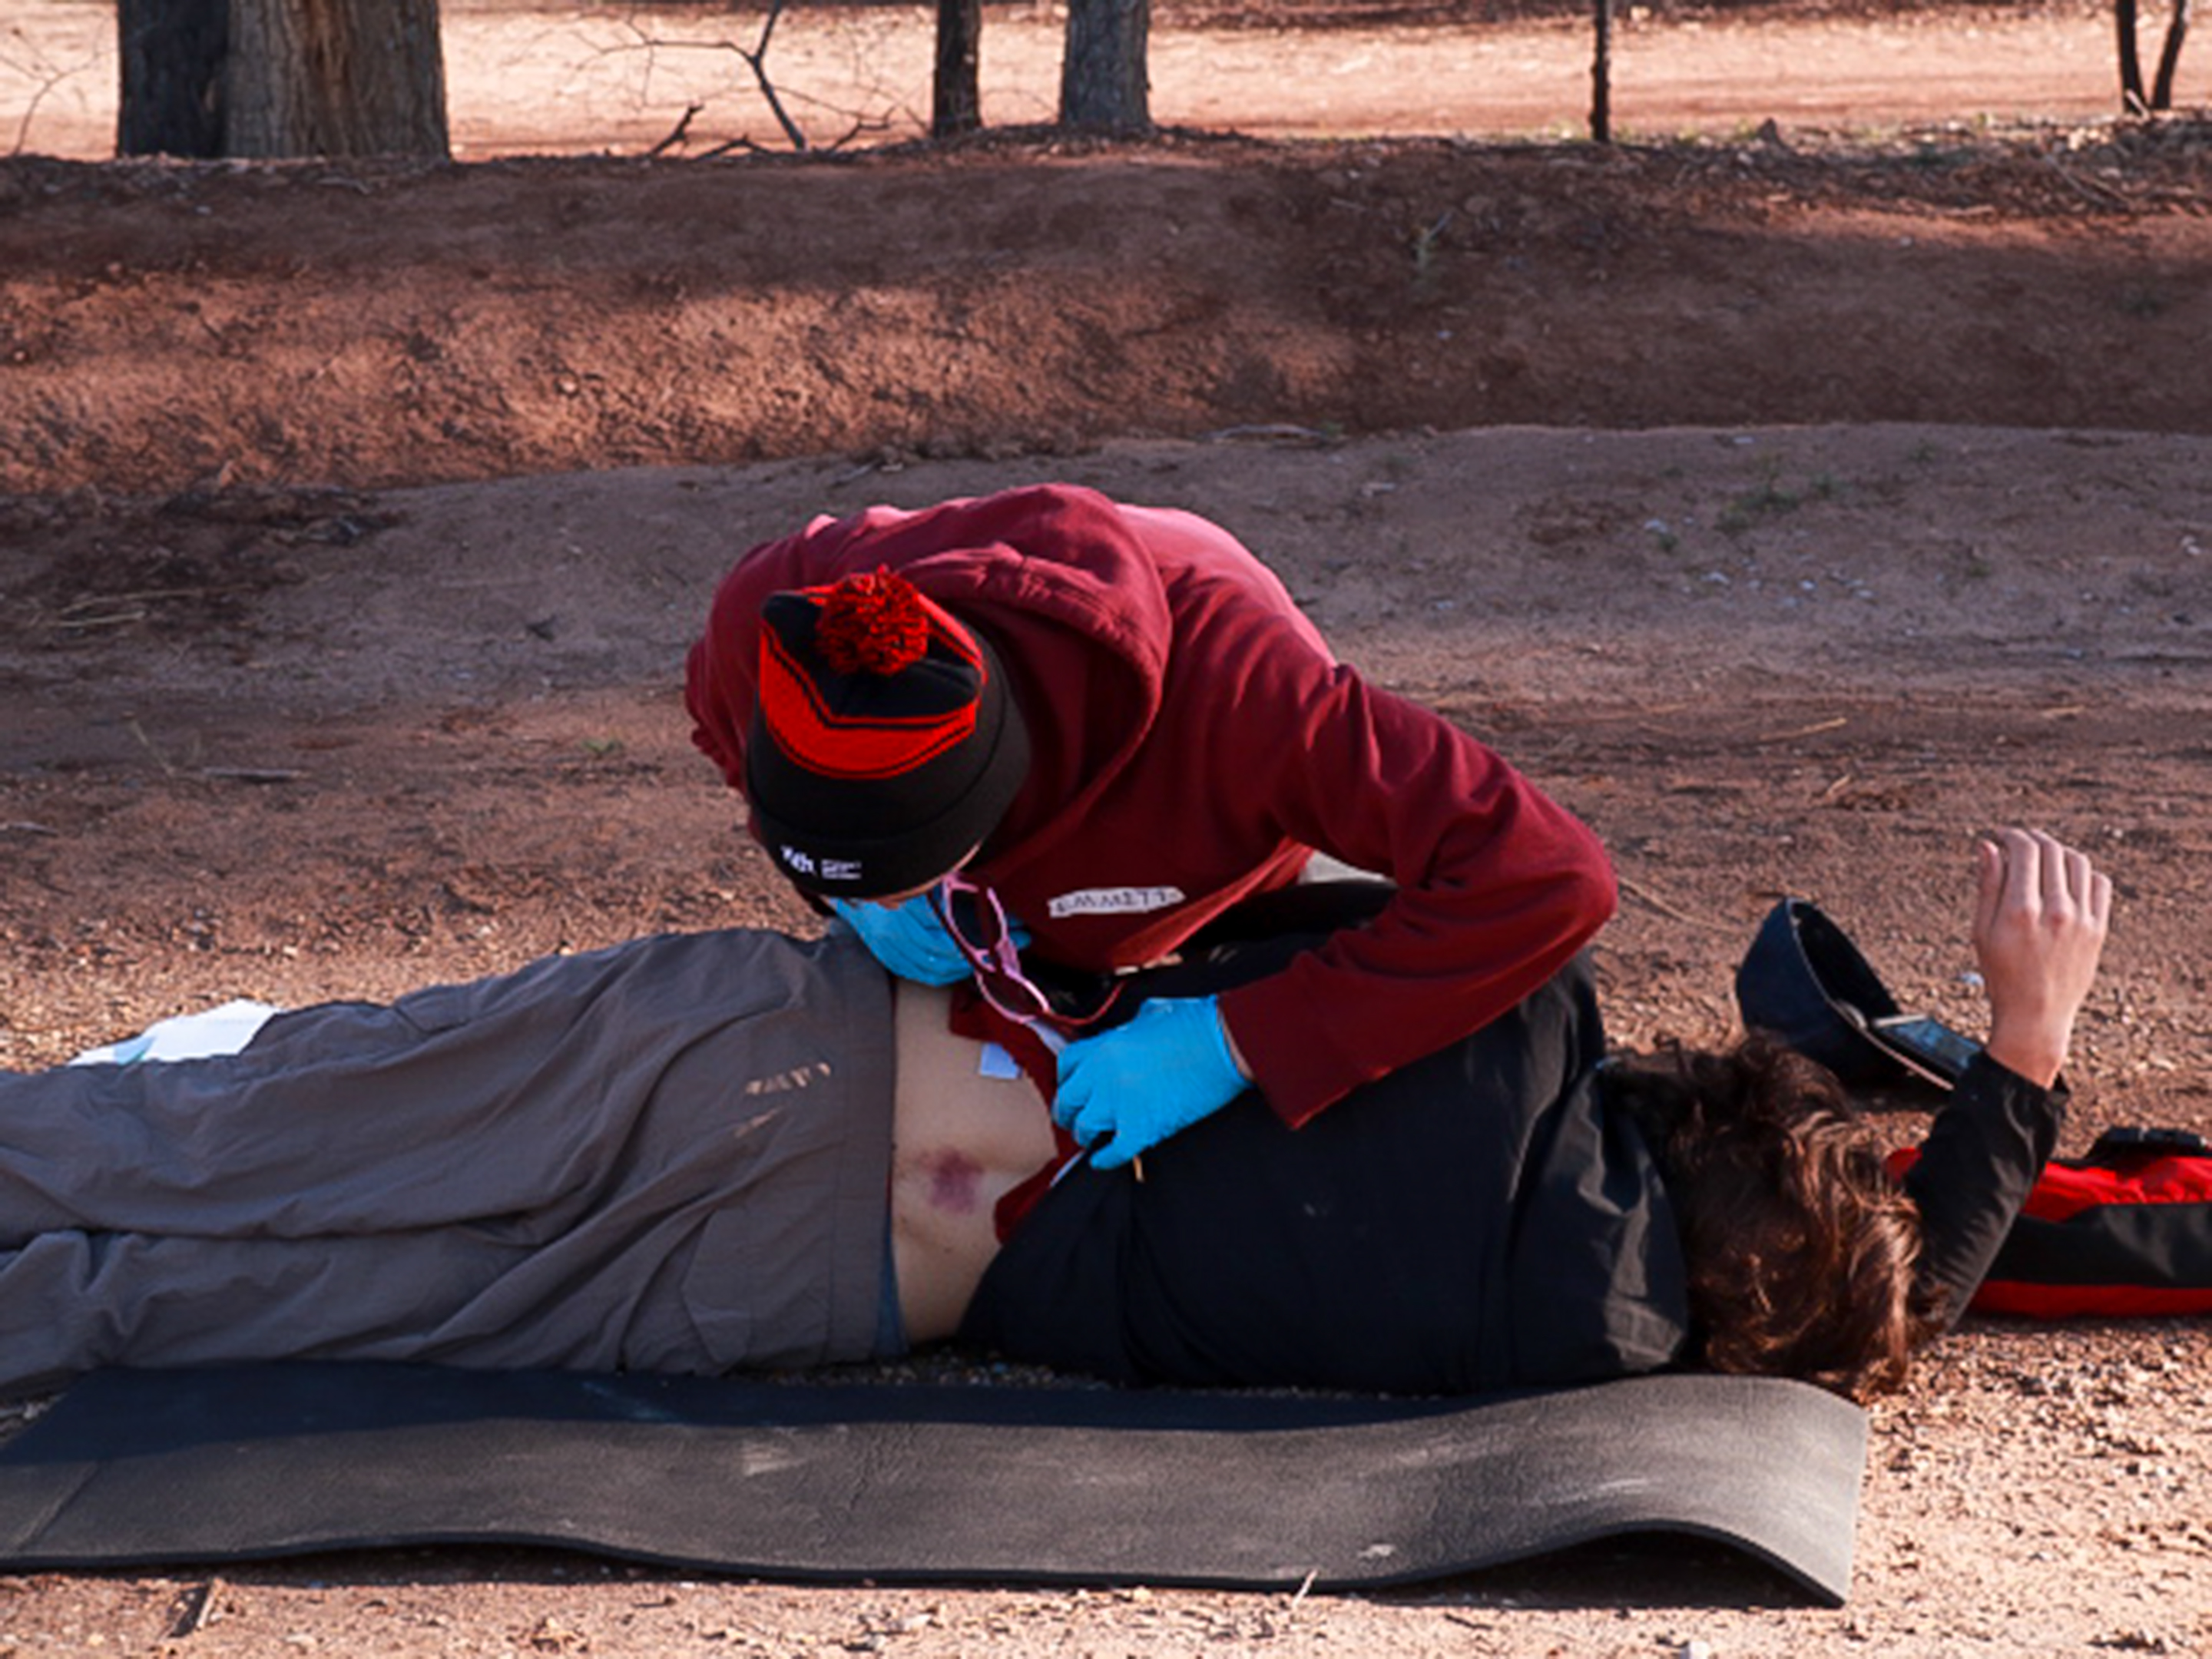 A rescuer log rolls a patient to check his bruised spine.